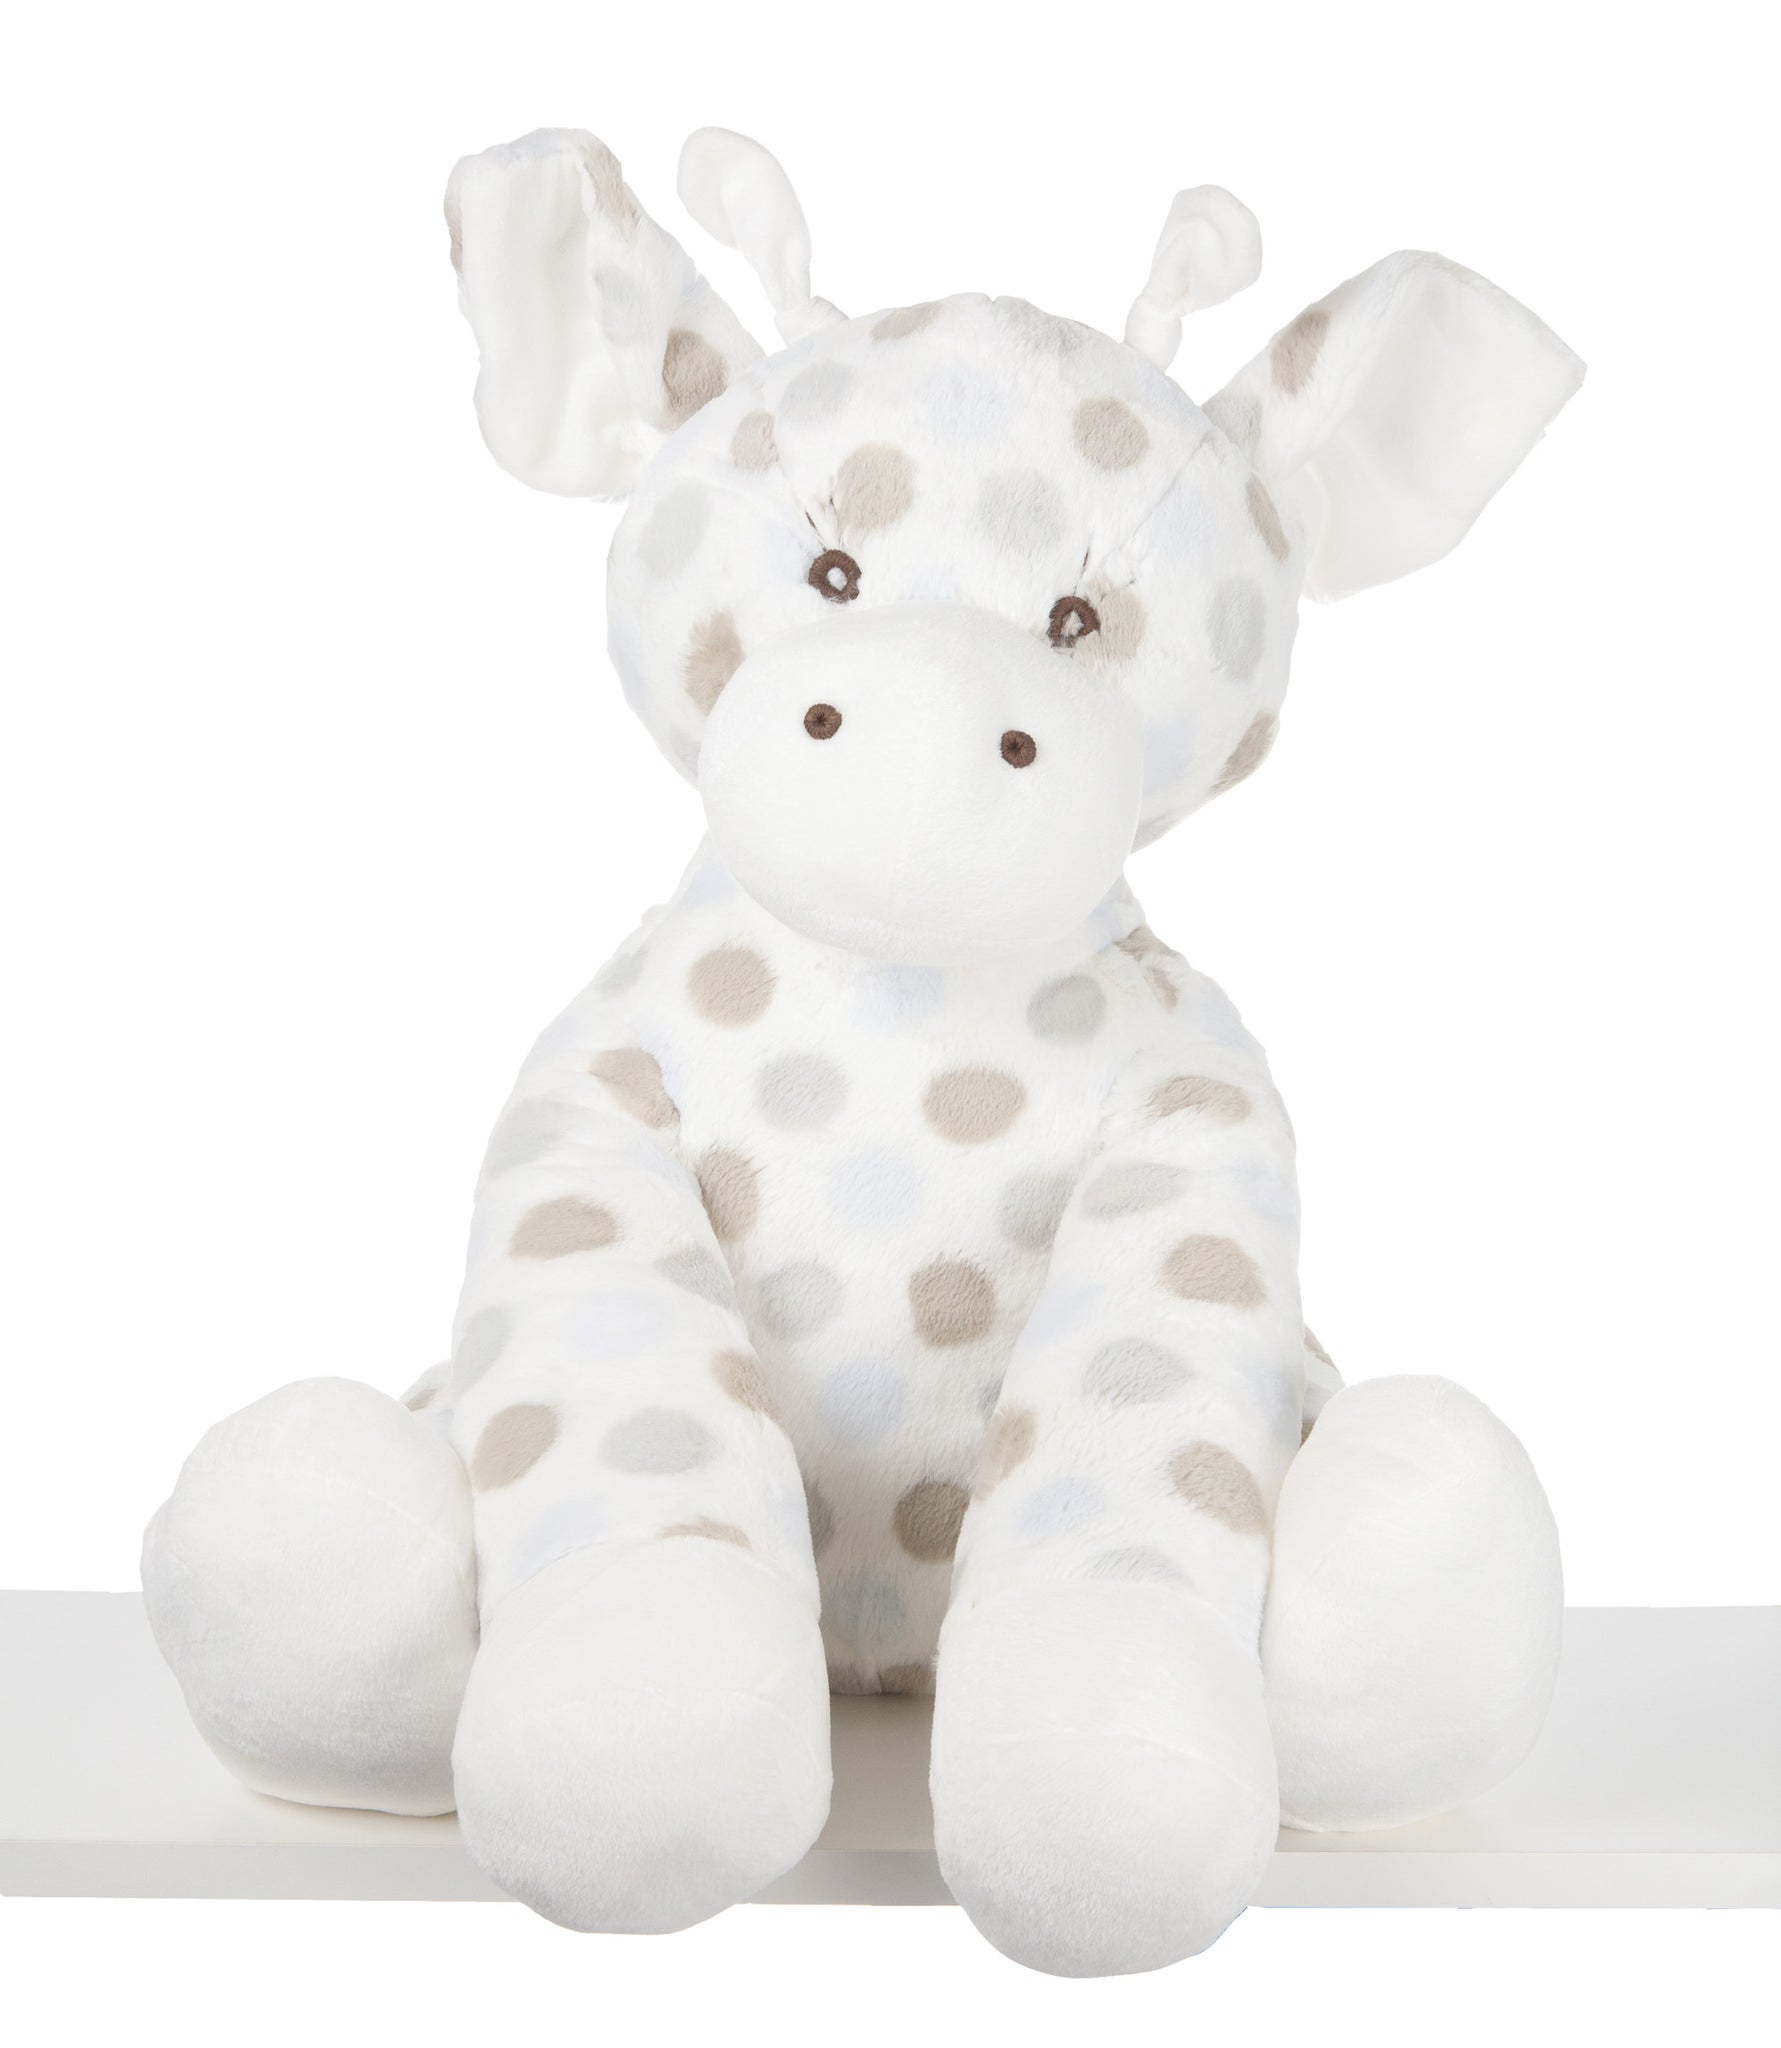 Little G Plush Toy Giraffe Blue